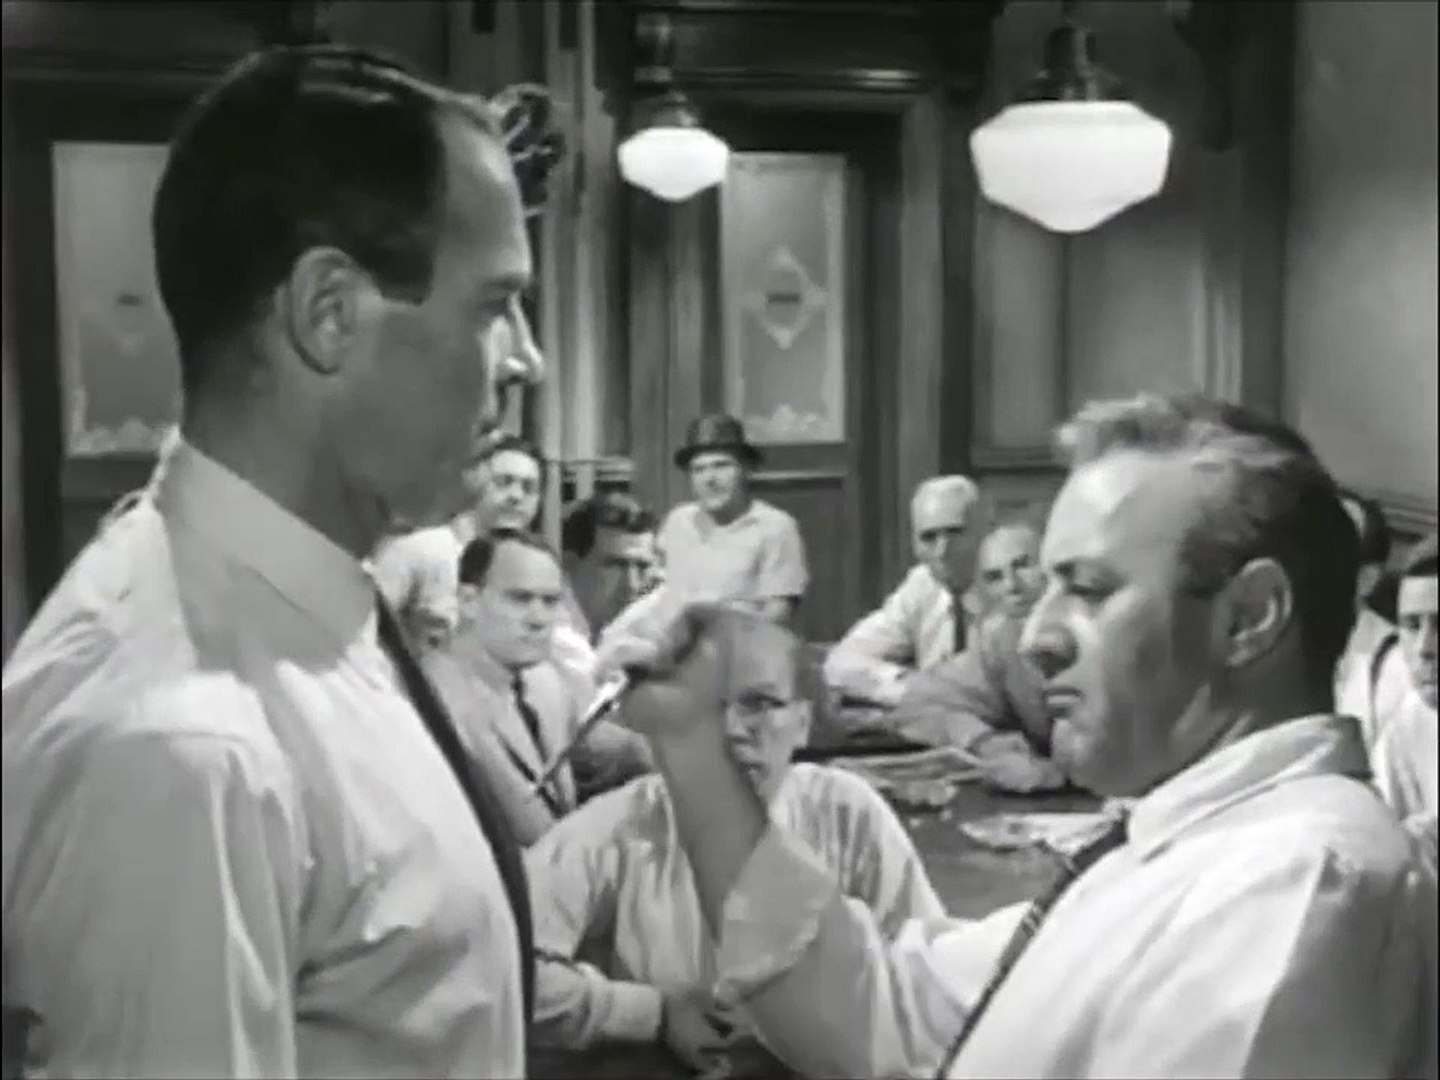 12 Angry Men Movie (1957) - Henry Fonda, Lee J. Cobb, Martin Balsam